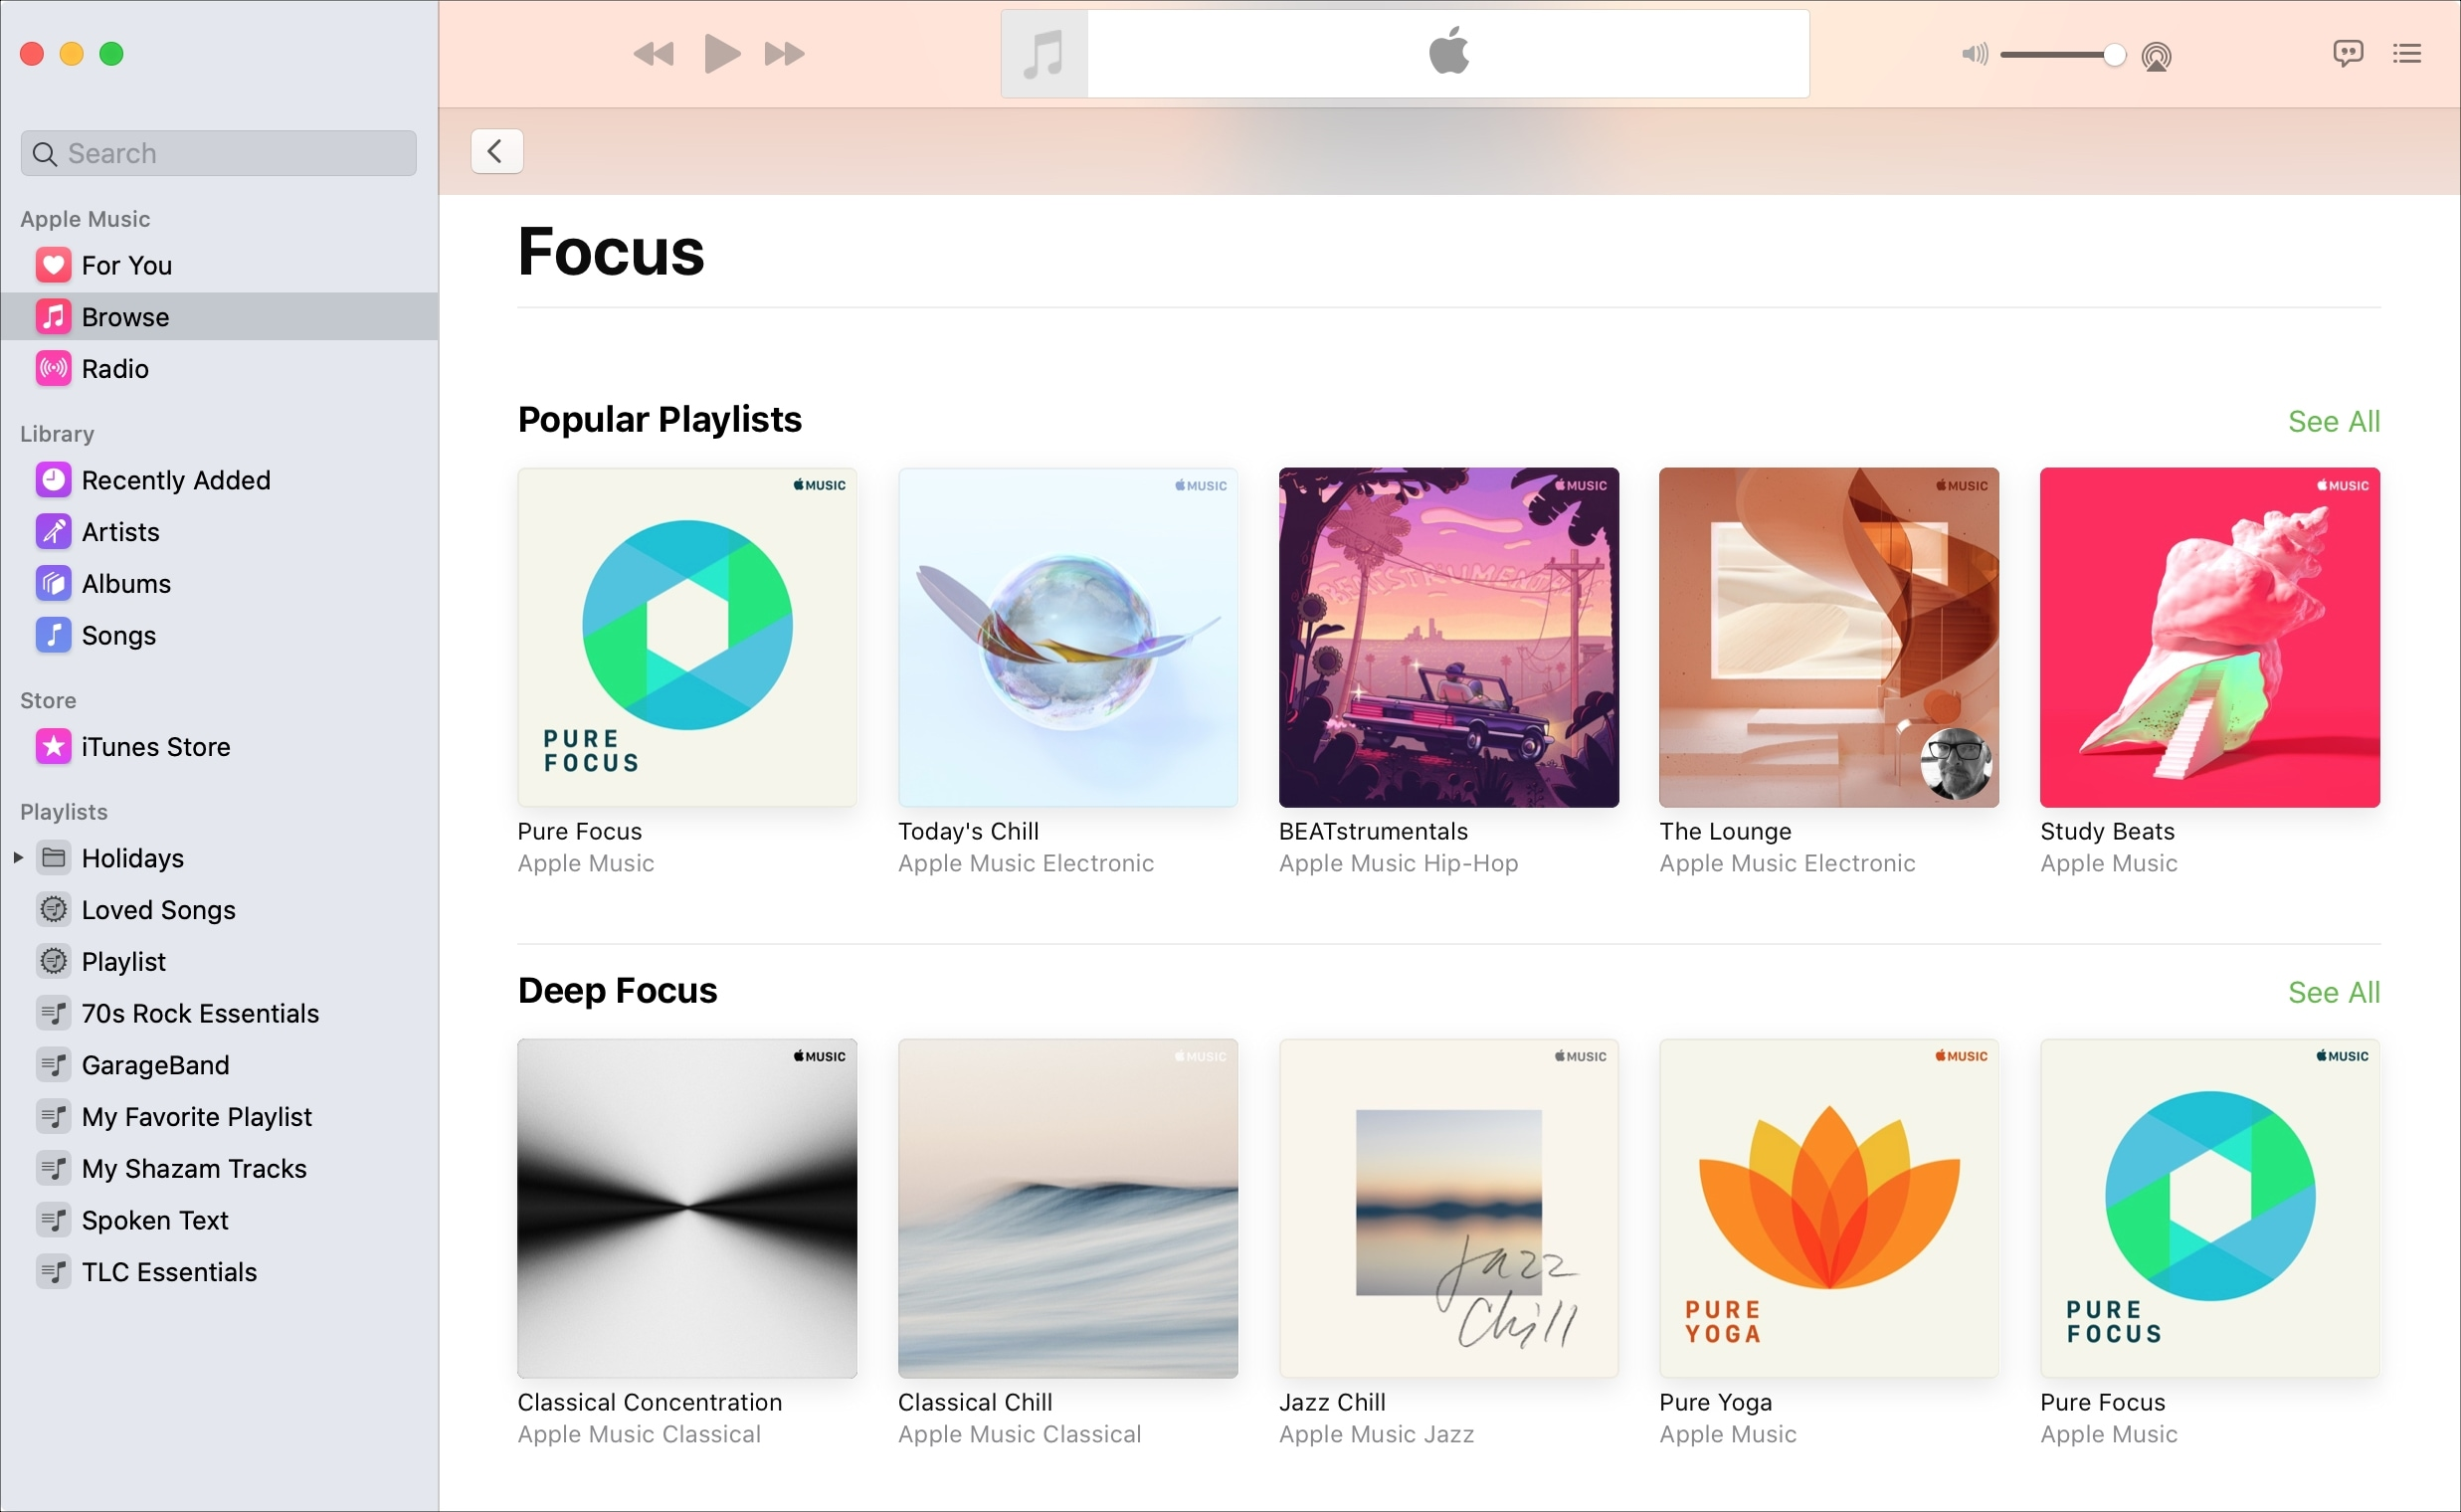 Apple Music Focus section Mac